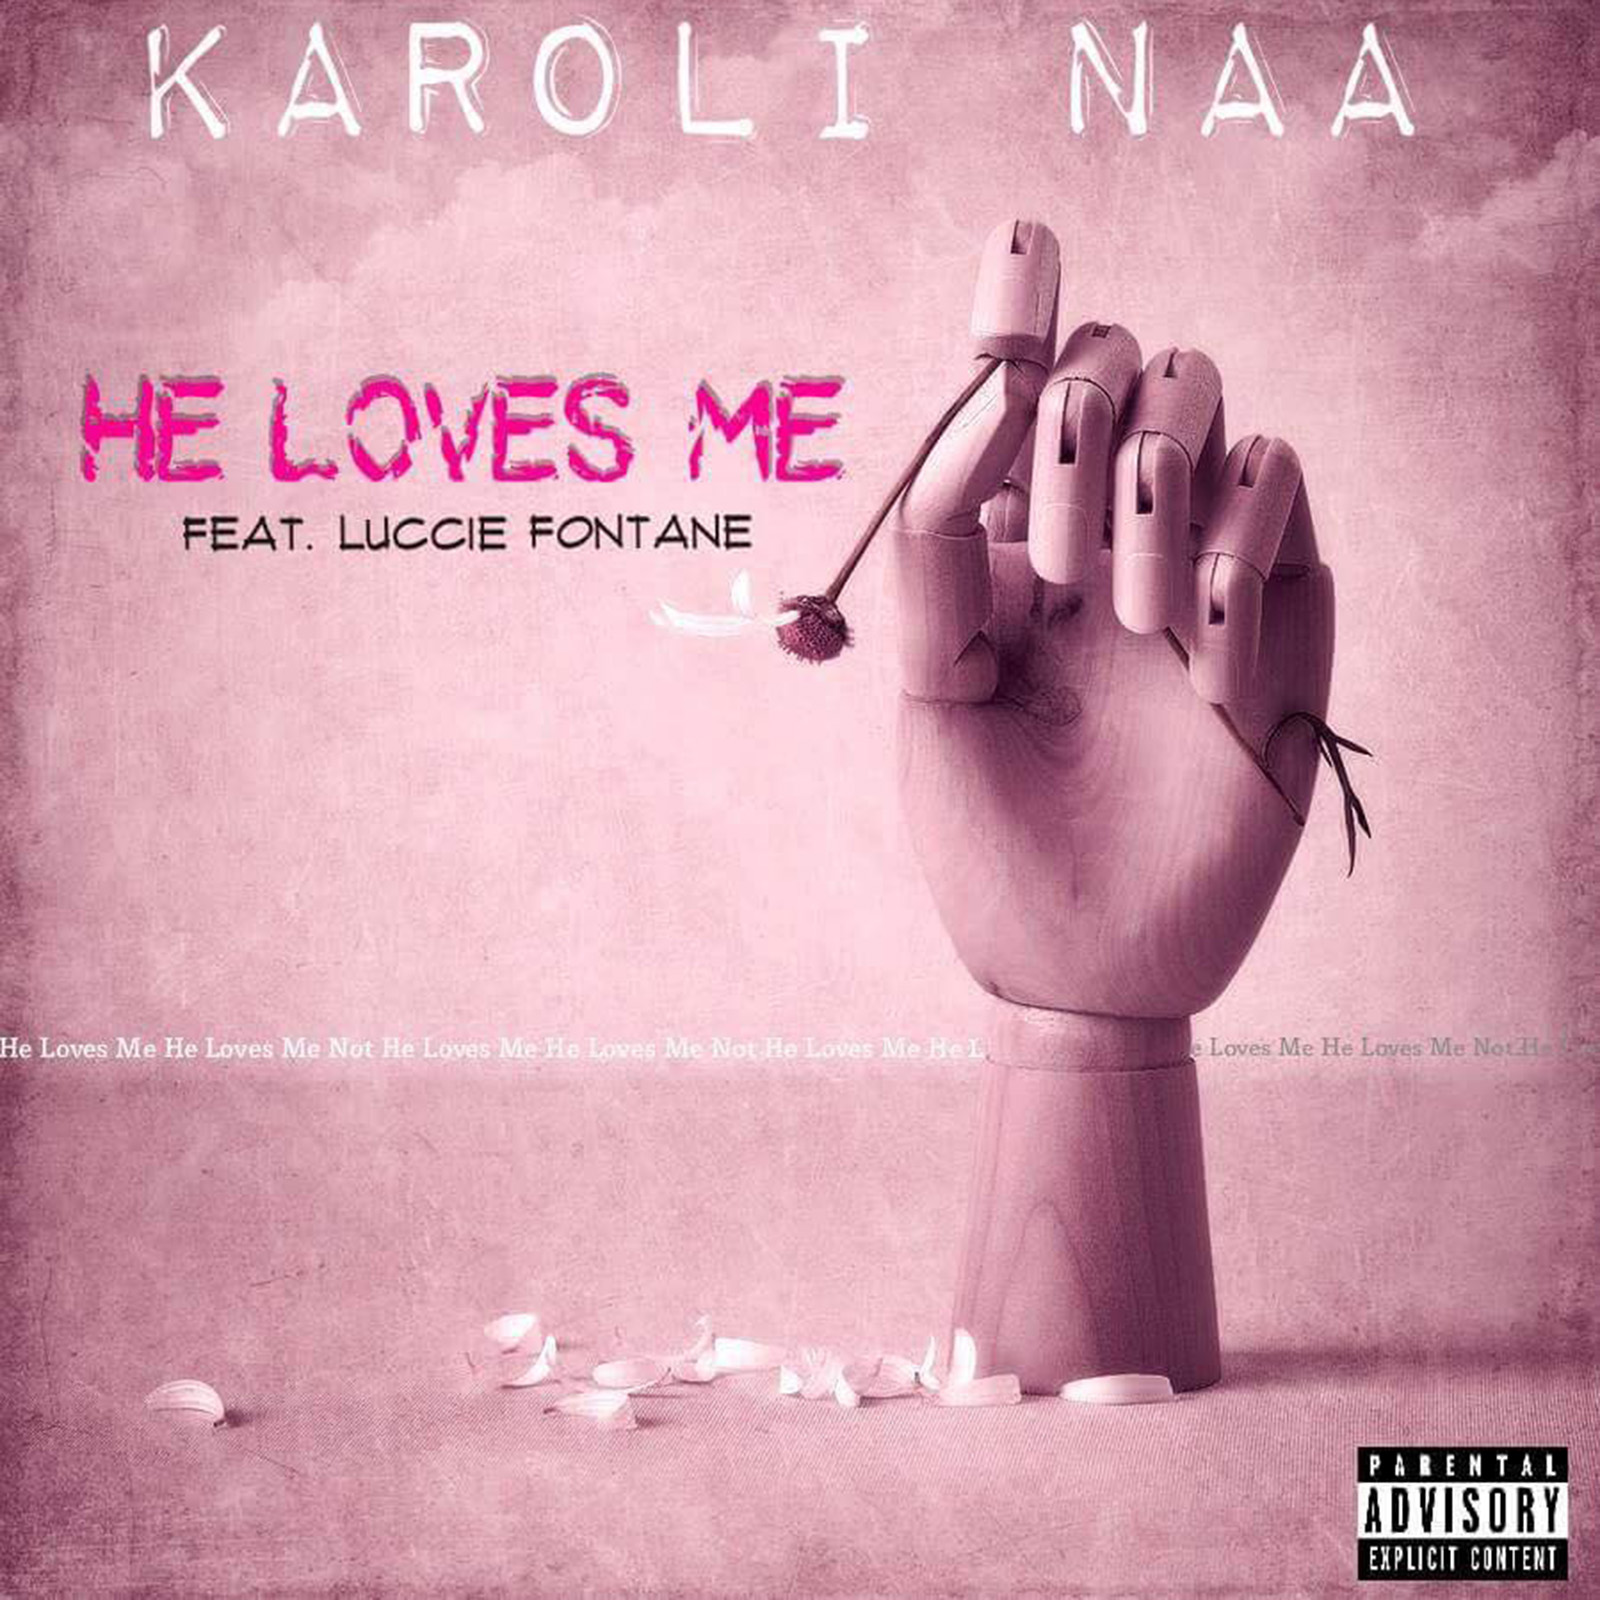 He Loves Me by Karoli Naa feat. Luccie Fontane